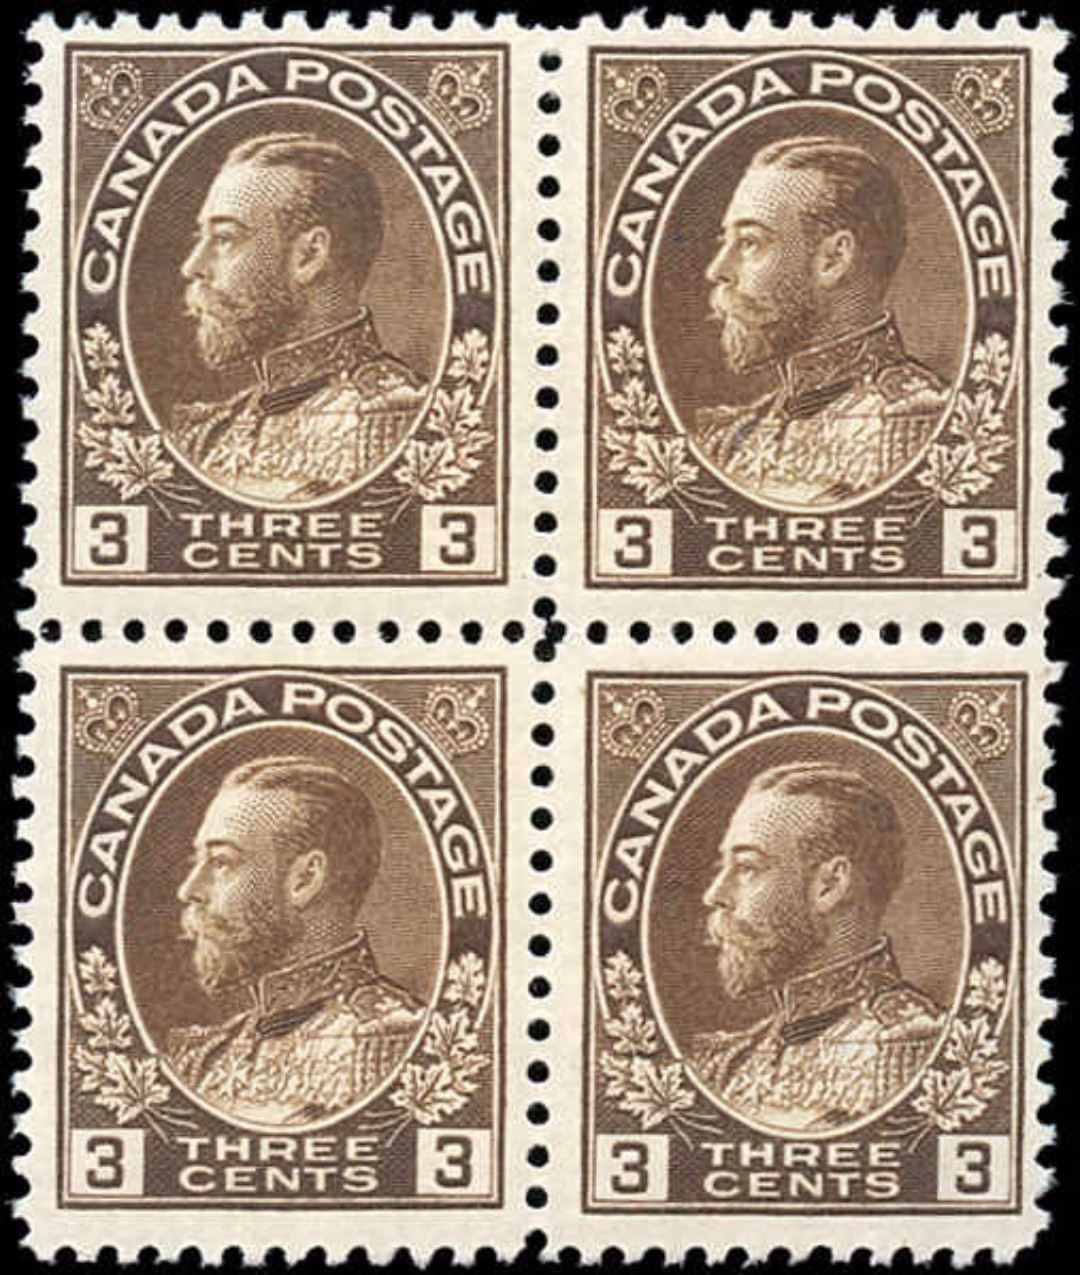 Canada Stamp, Scott #108 Block, F-VF, MNH